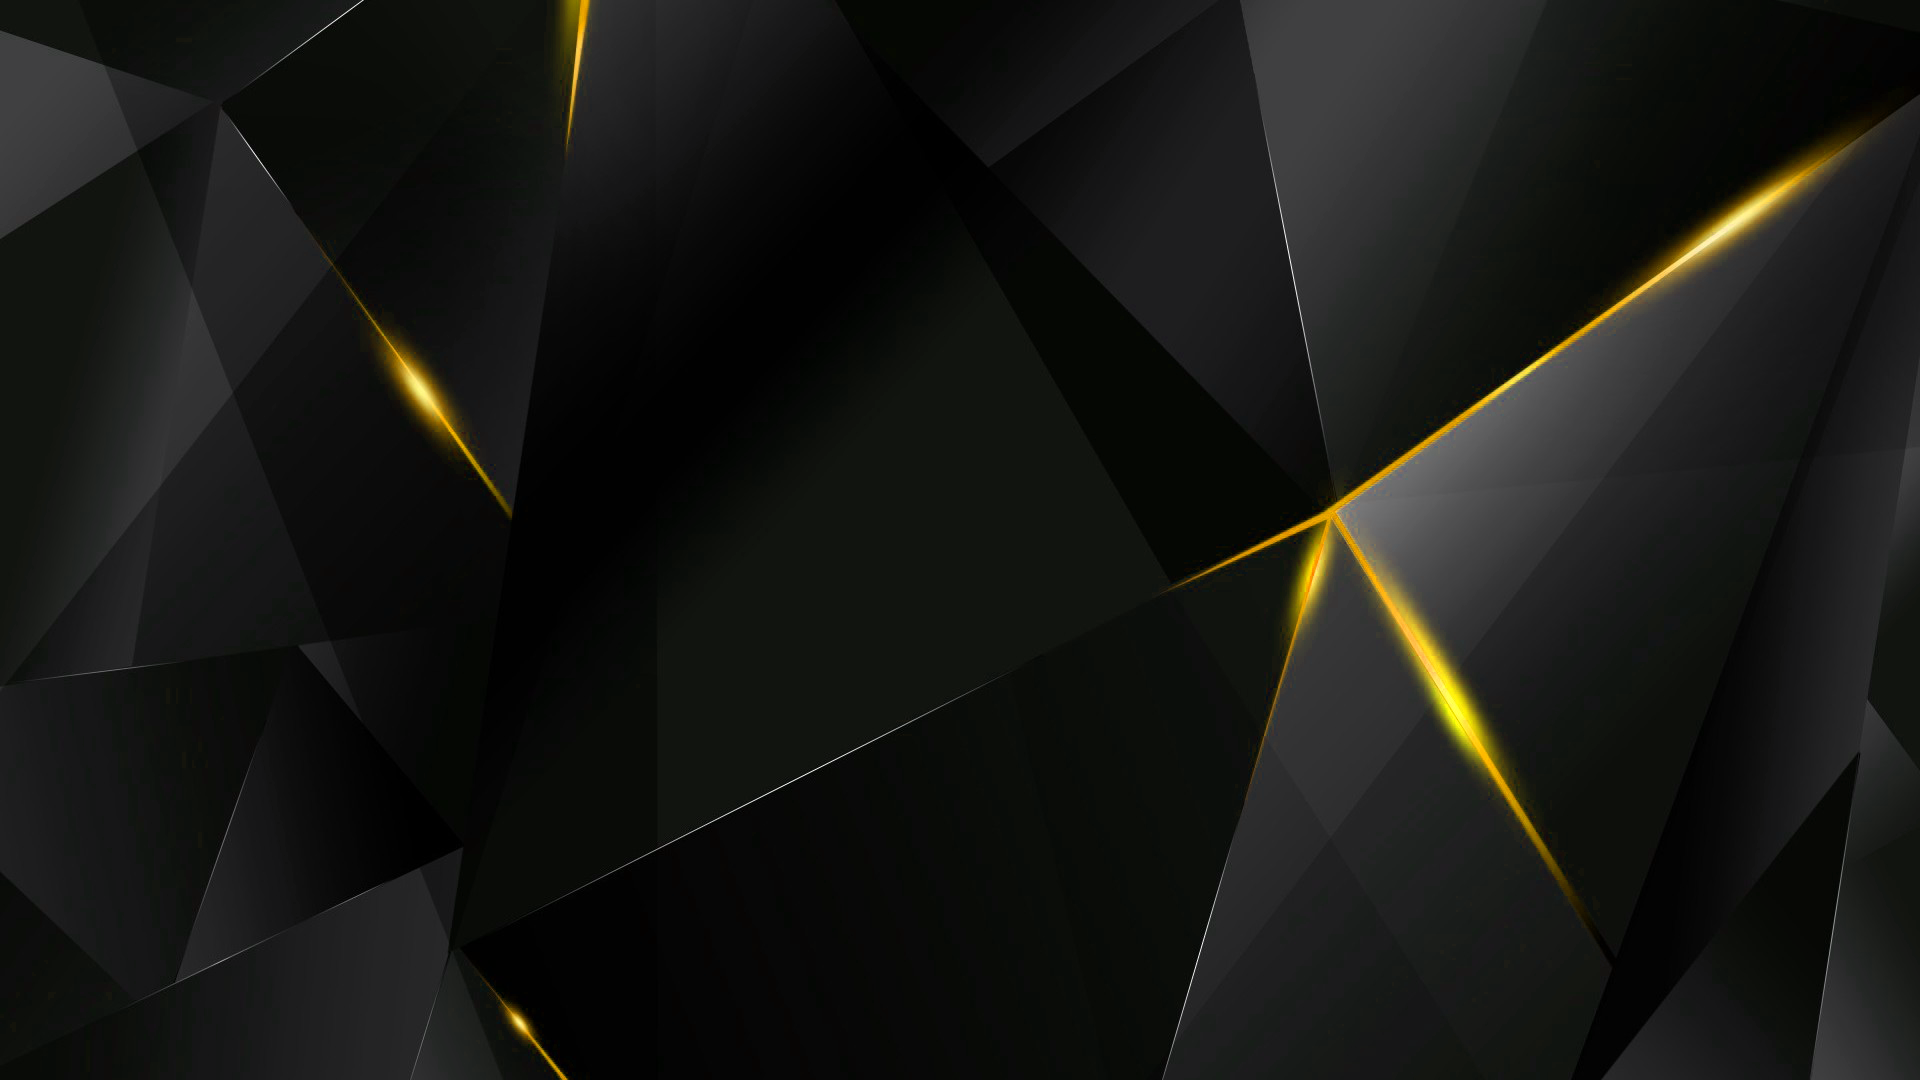 Wallpapers Yellow Abstract Polygons Black Bg By Kaminohunter